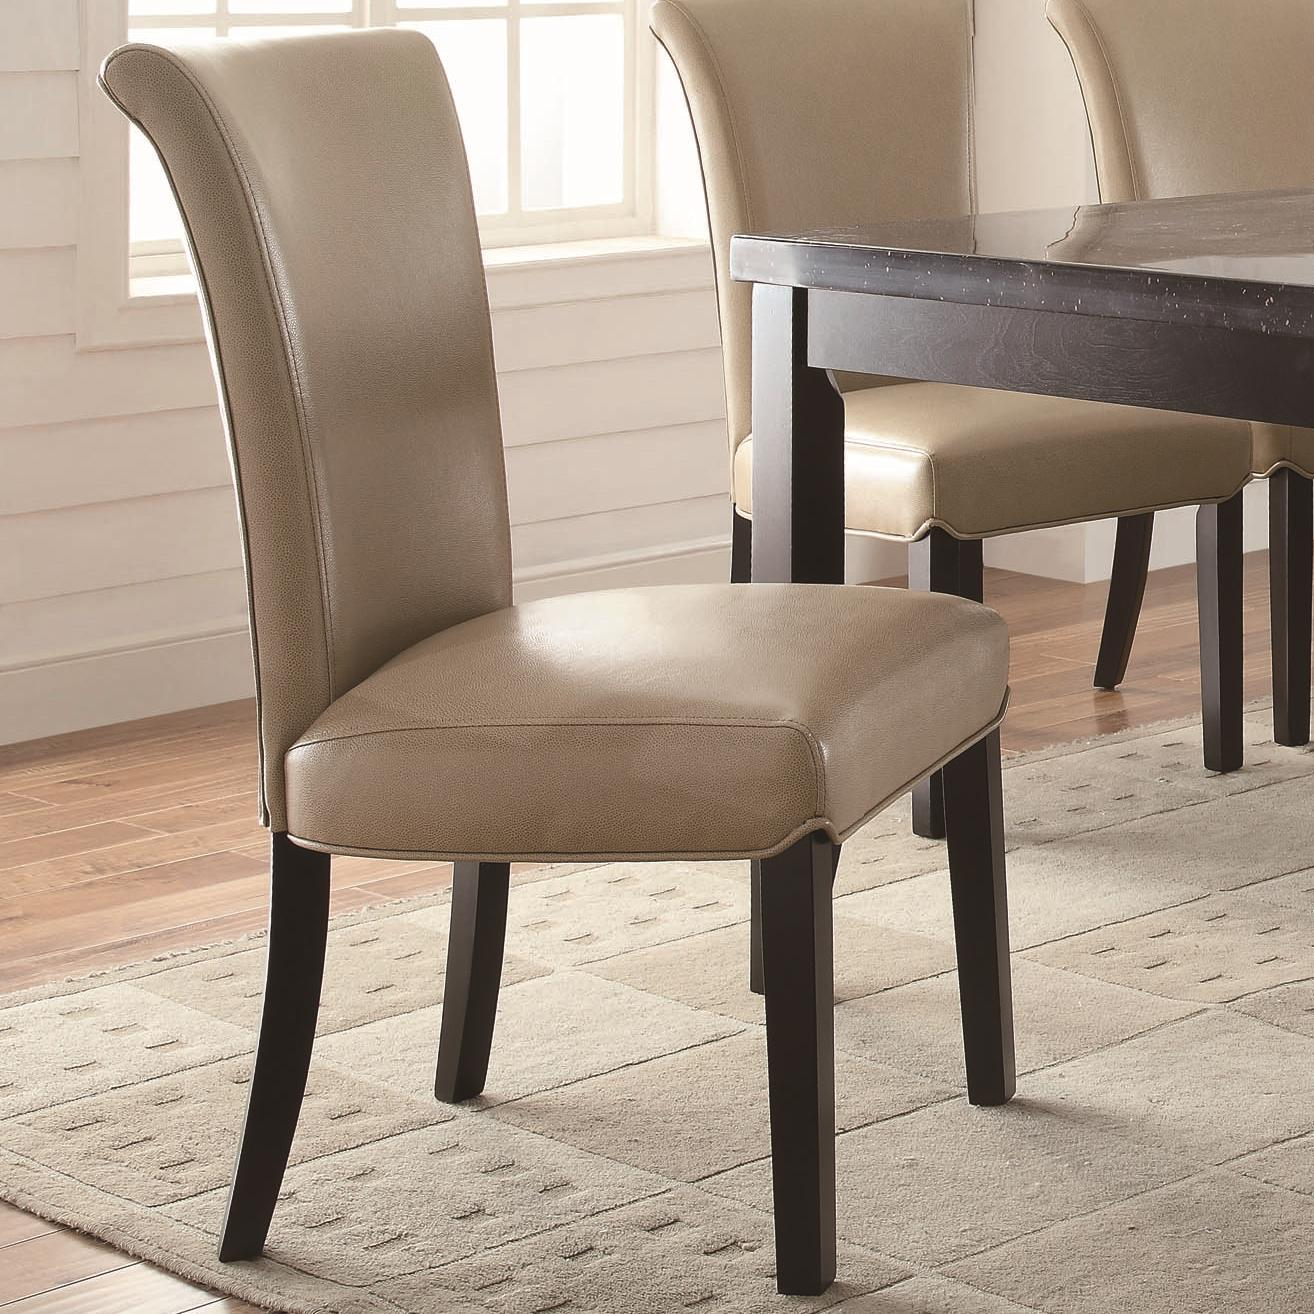 Curved Back Dining Room Bench: Coaster Newbridge Upholstered Taupe Side Chair With Curved